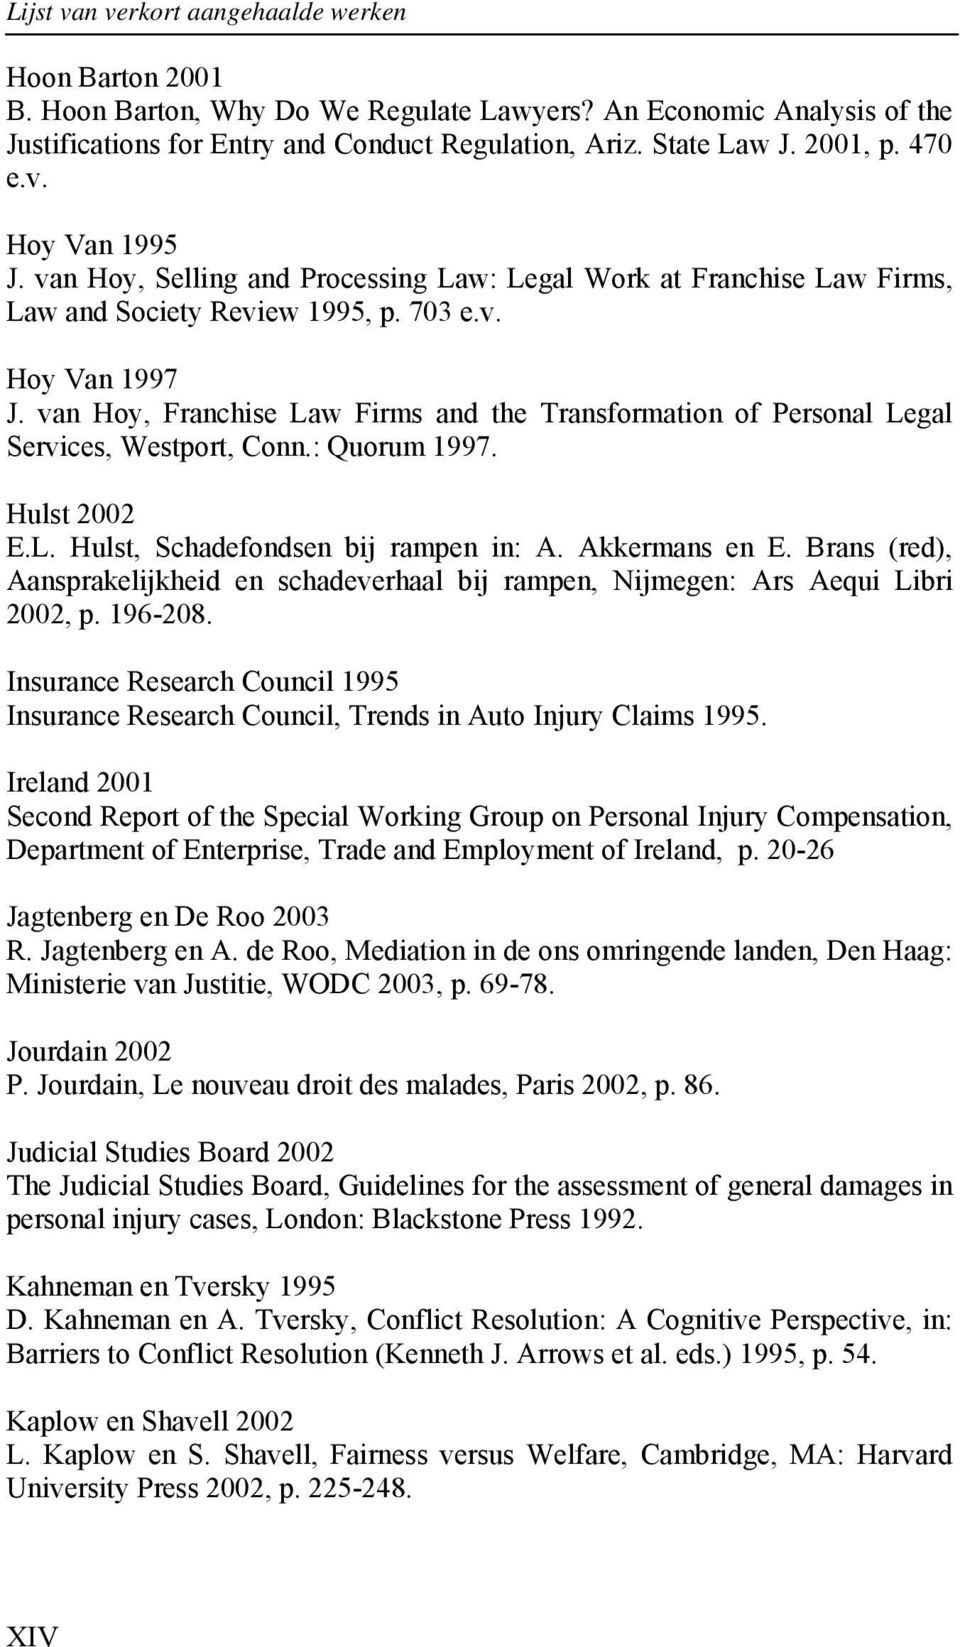 van Hoy, Franchise Law Firms and the Transformation of Personal Legal Services, Westport, Conn.: Quorum 1997. Hulst 2002 E.L. Hulst, Schadefondsen bij rampen in: A. Akkermans en E.